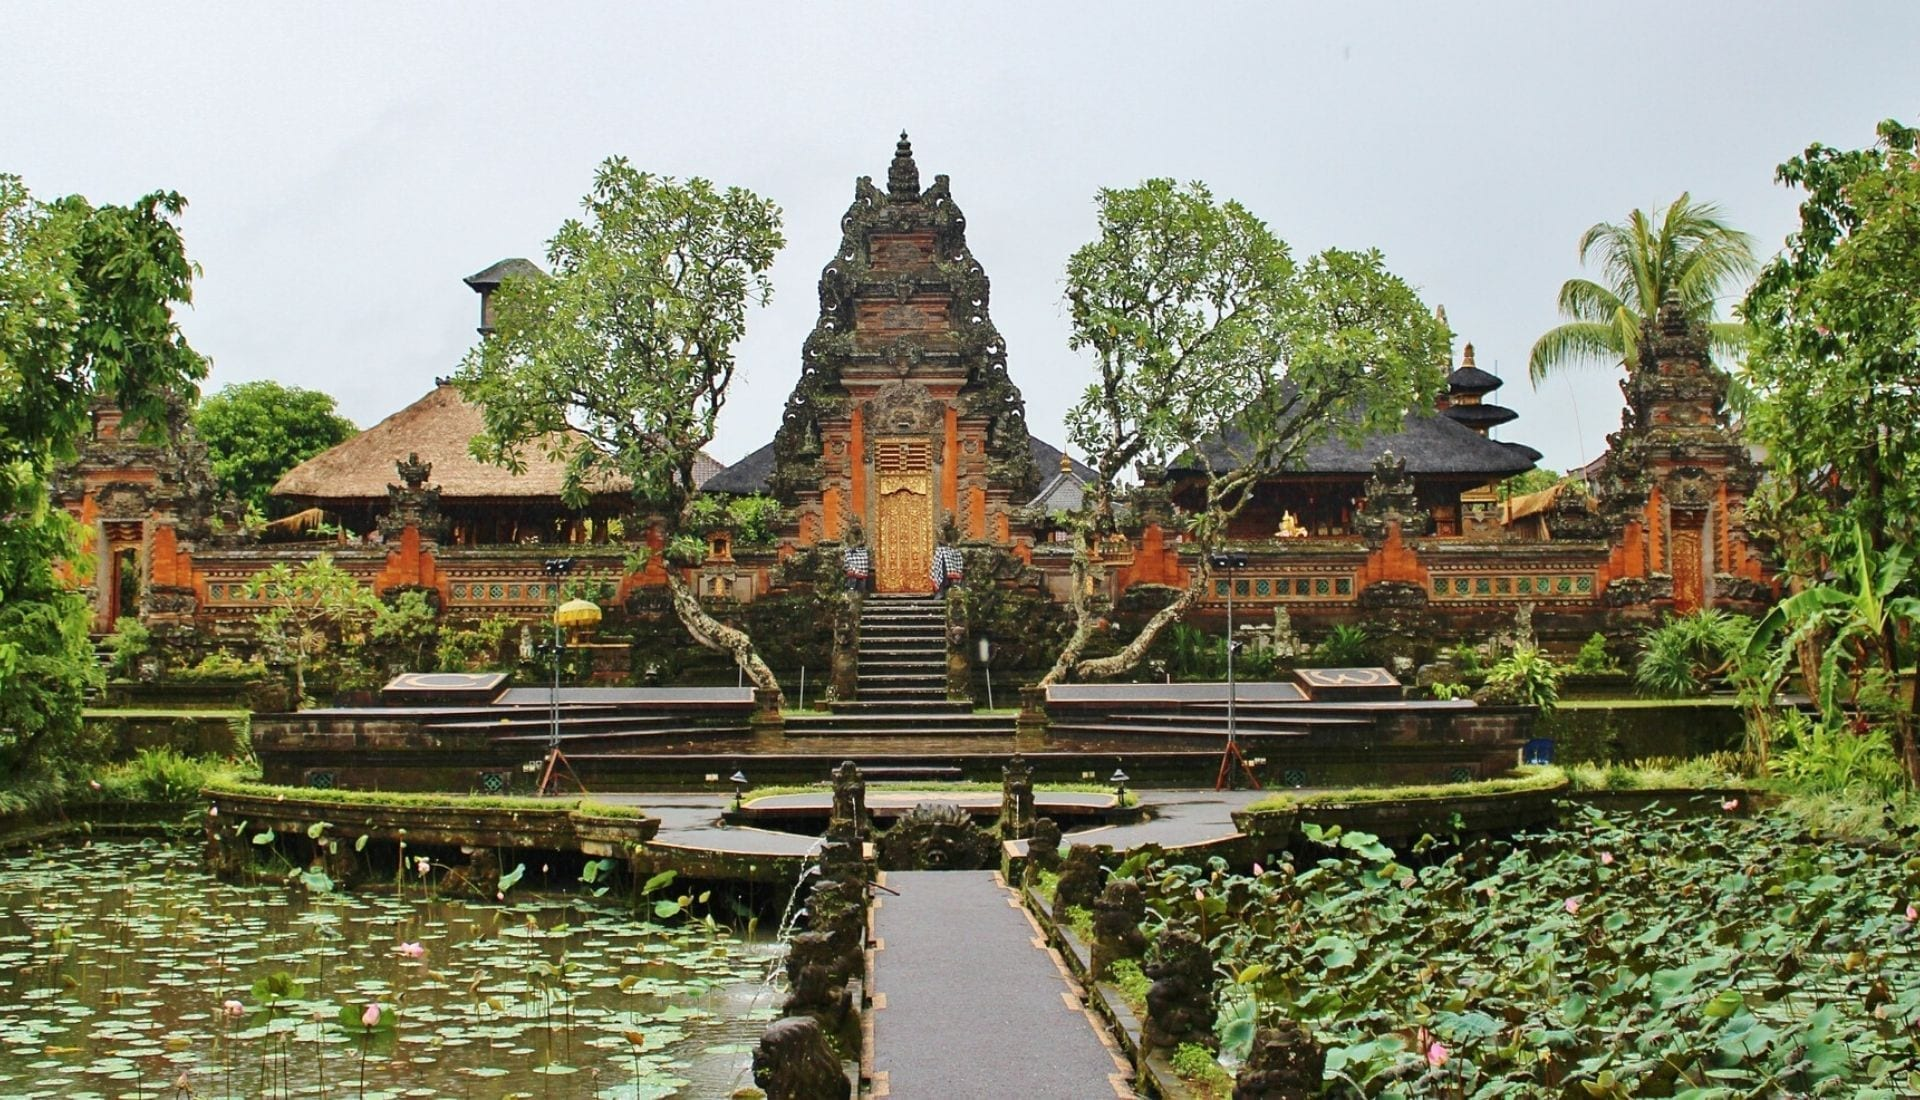 Bali - Land of Temples